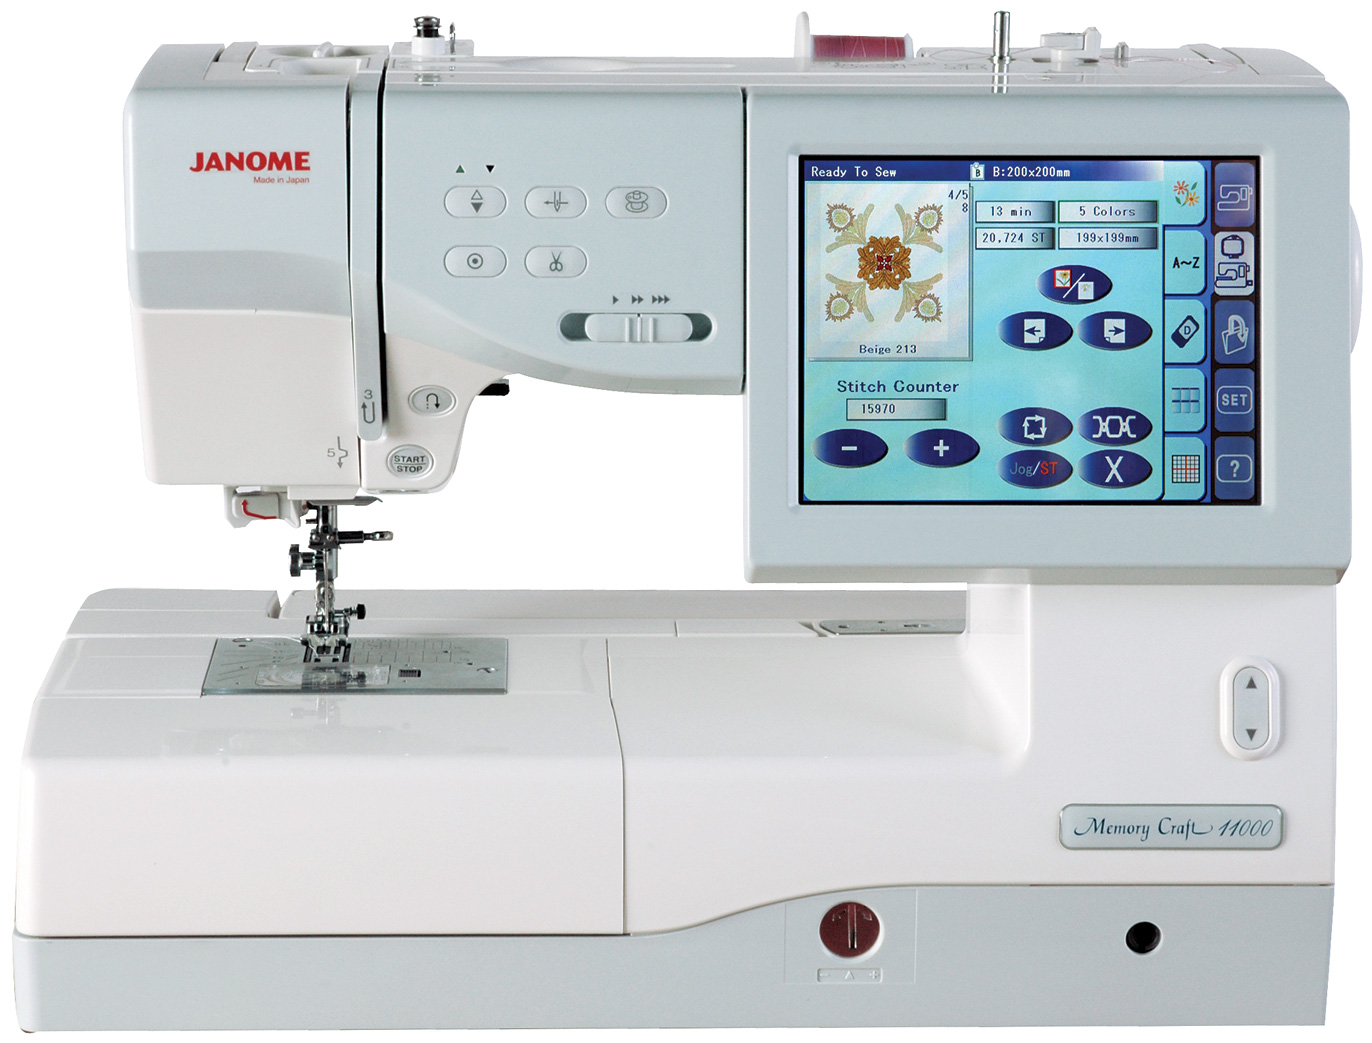 Janome memory craft 9900 -  Janome Memory Craft 11000 Fs Embroidery And Sewing Machine